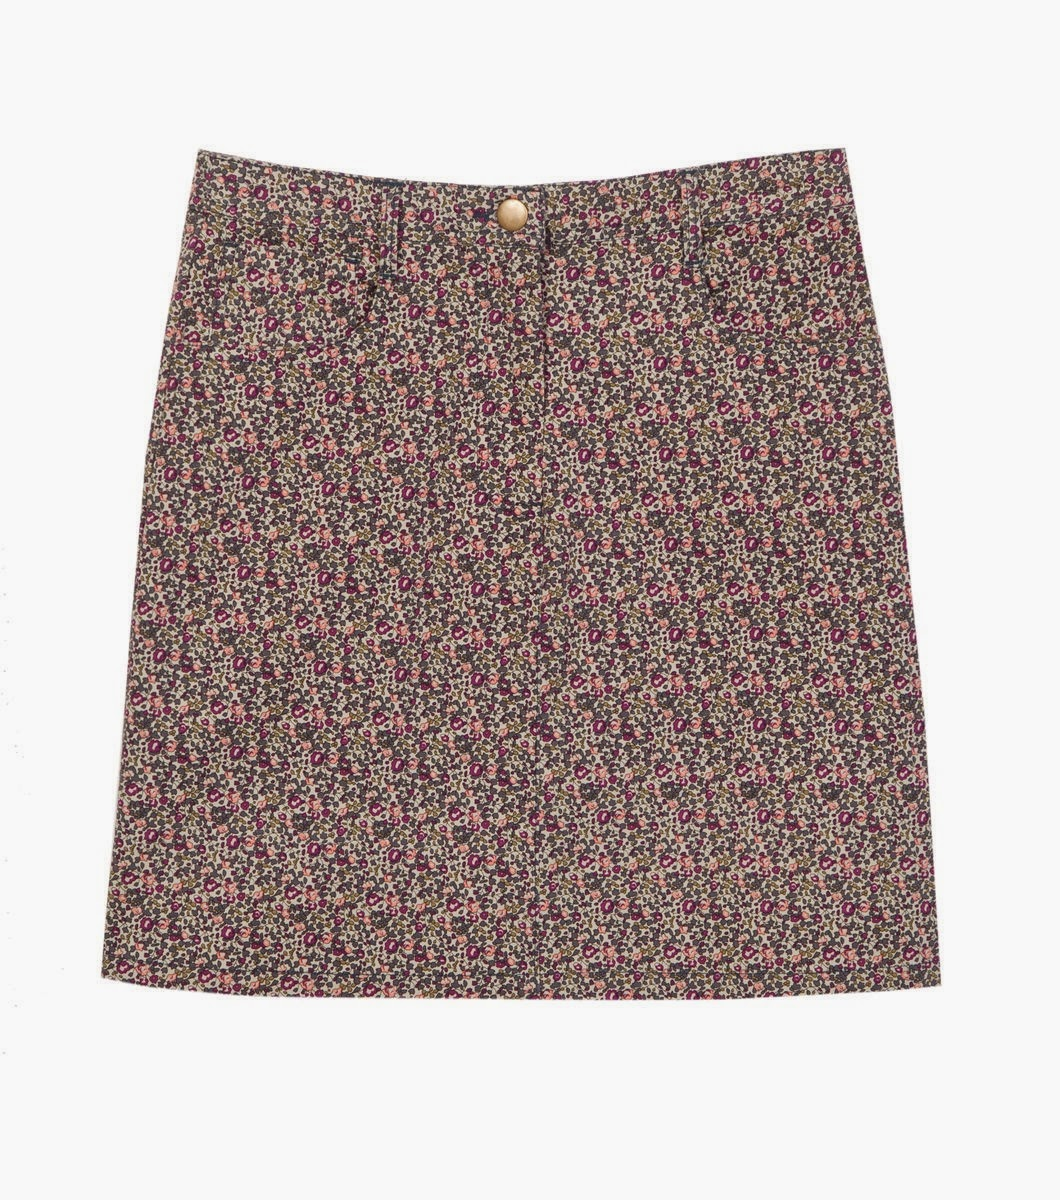 Inspiration: Gorman Secret Garden Skirt